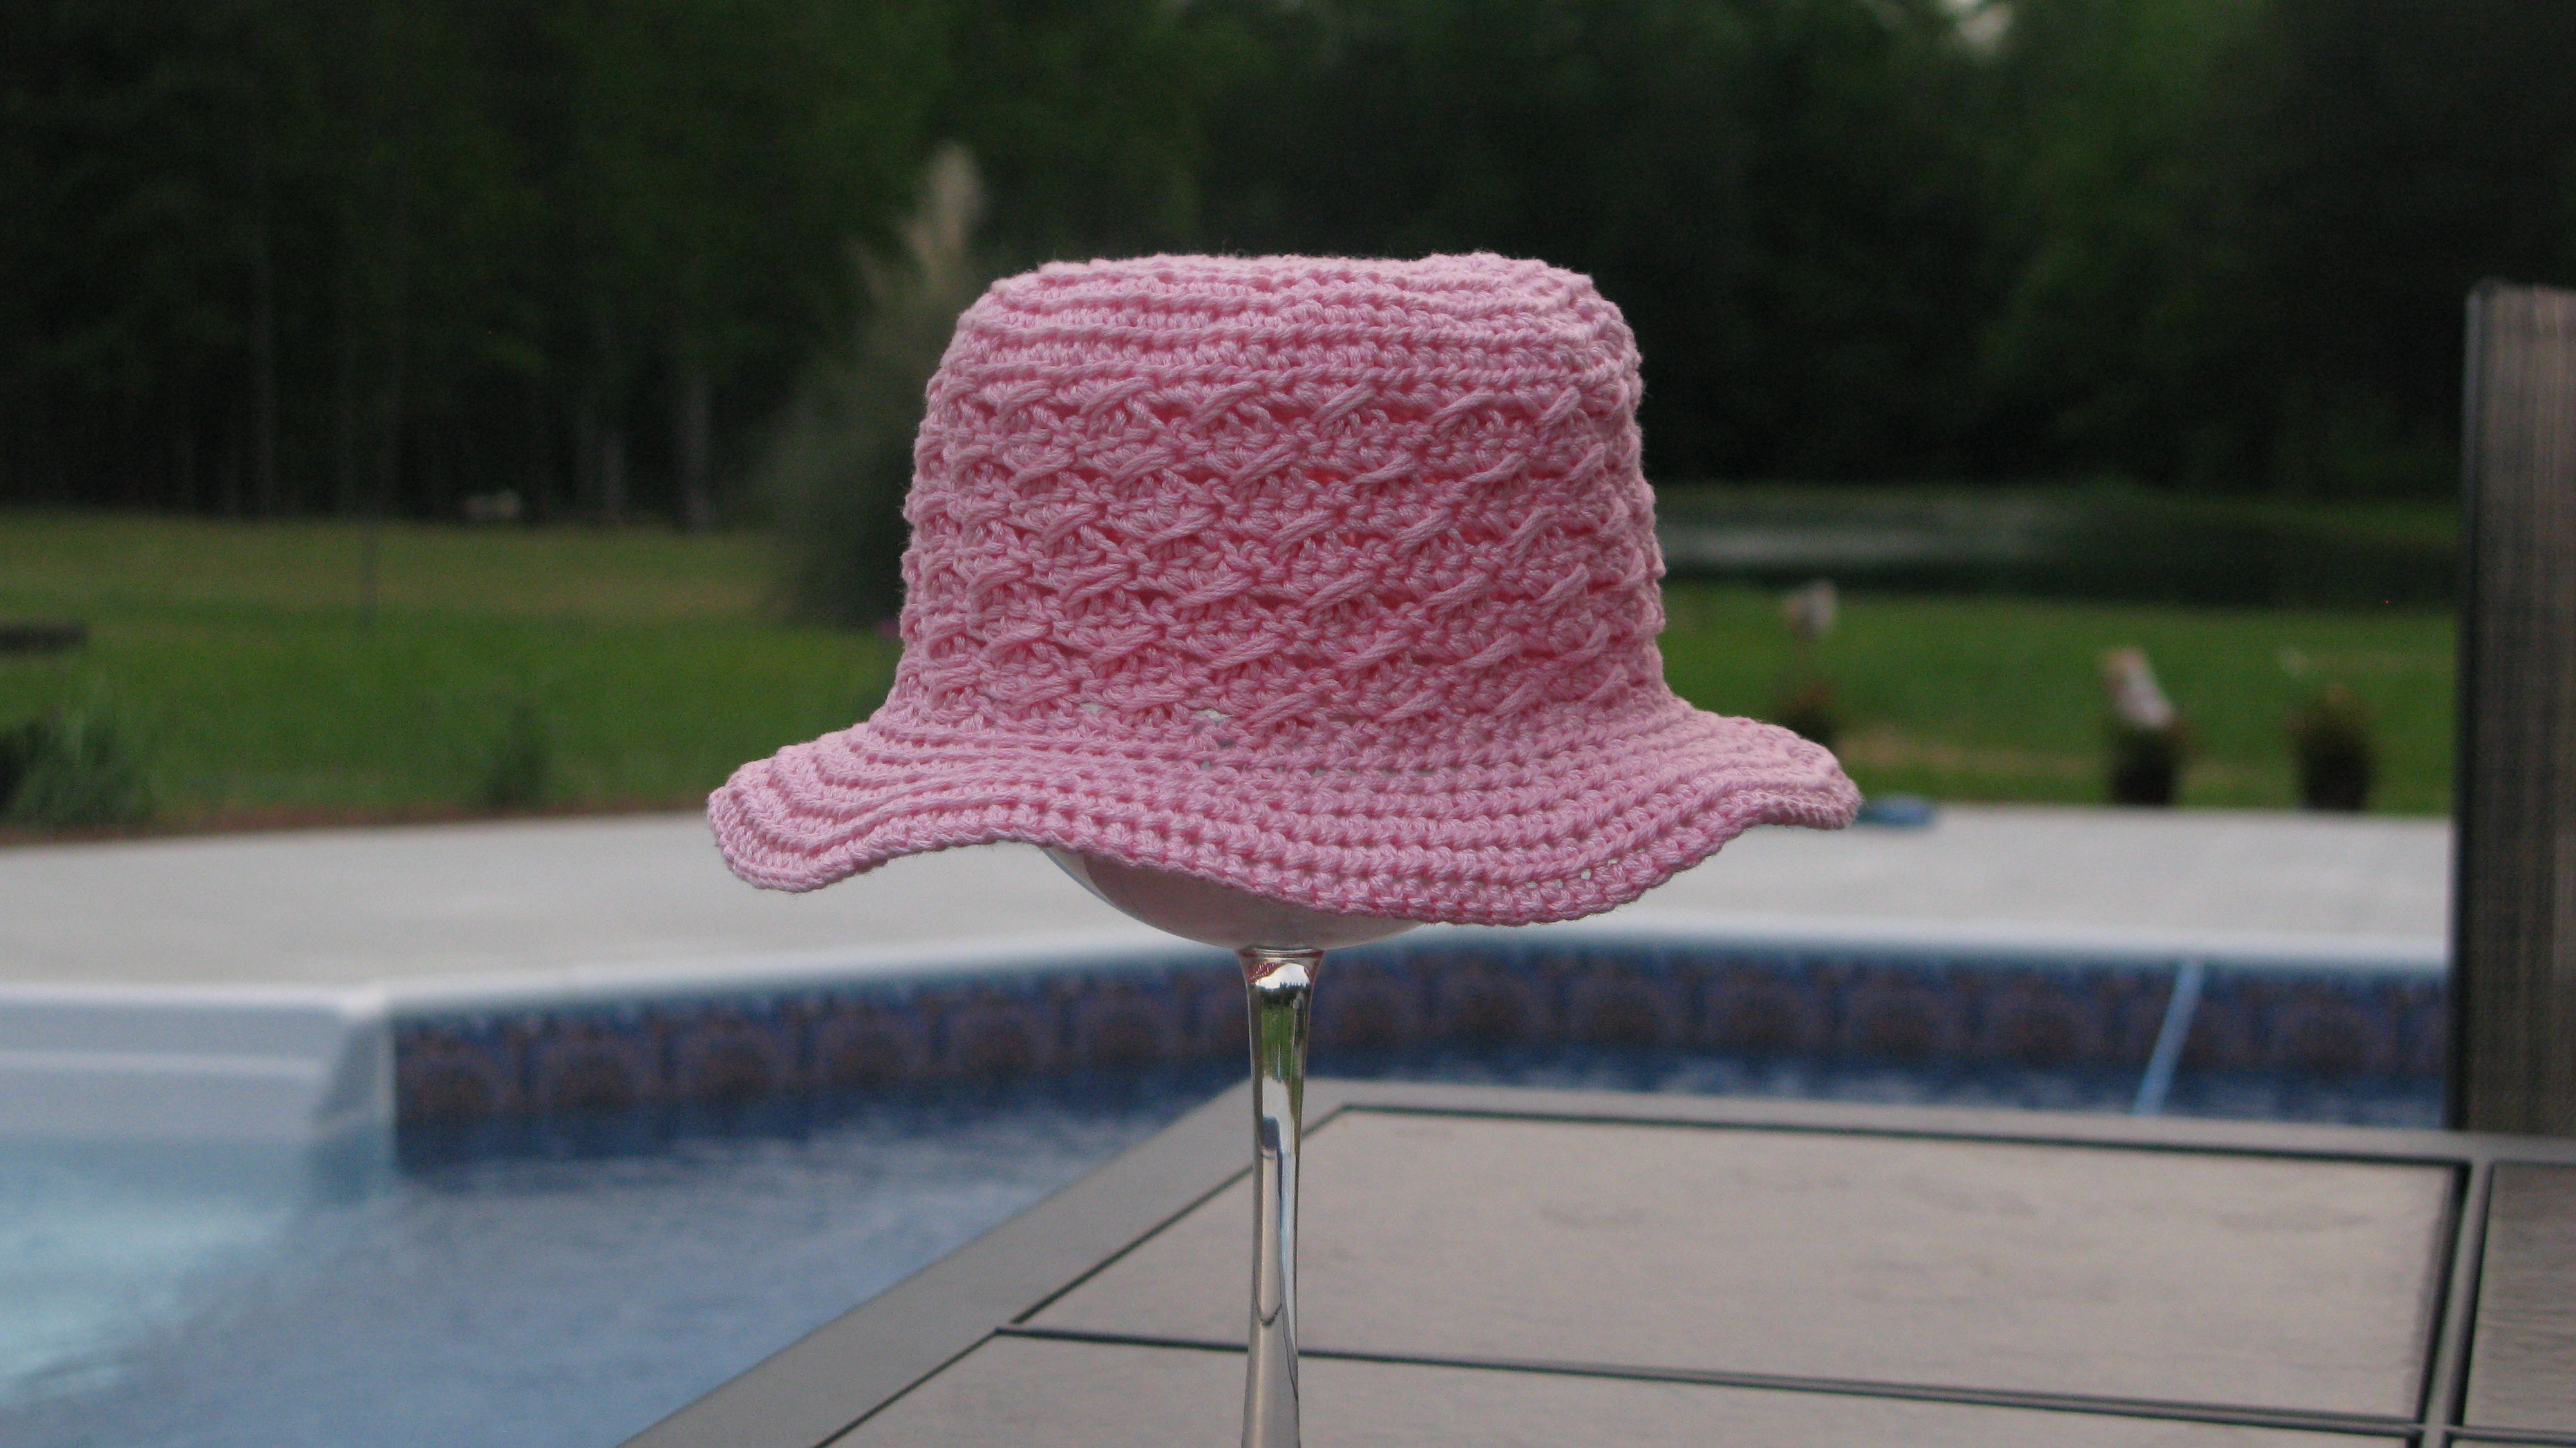 kathy sinfonia Mini Summer Beach Hat